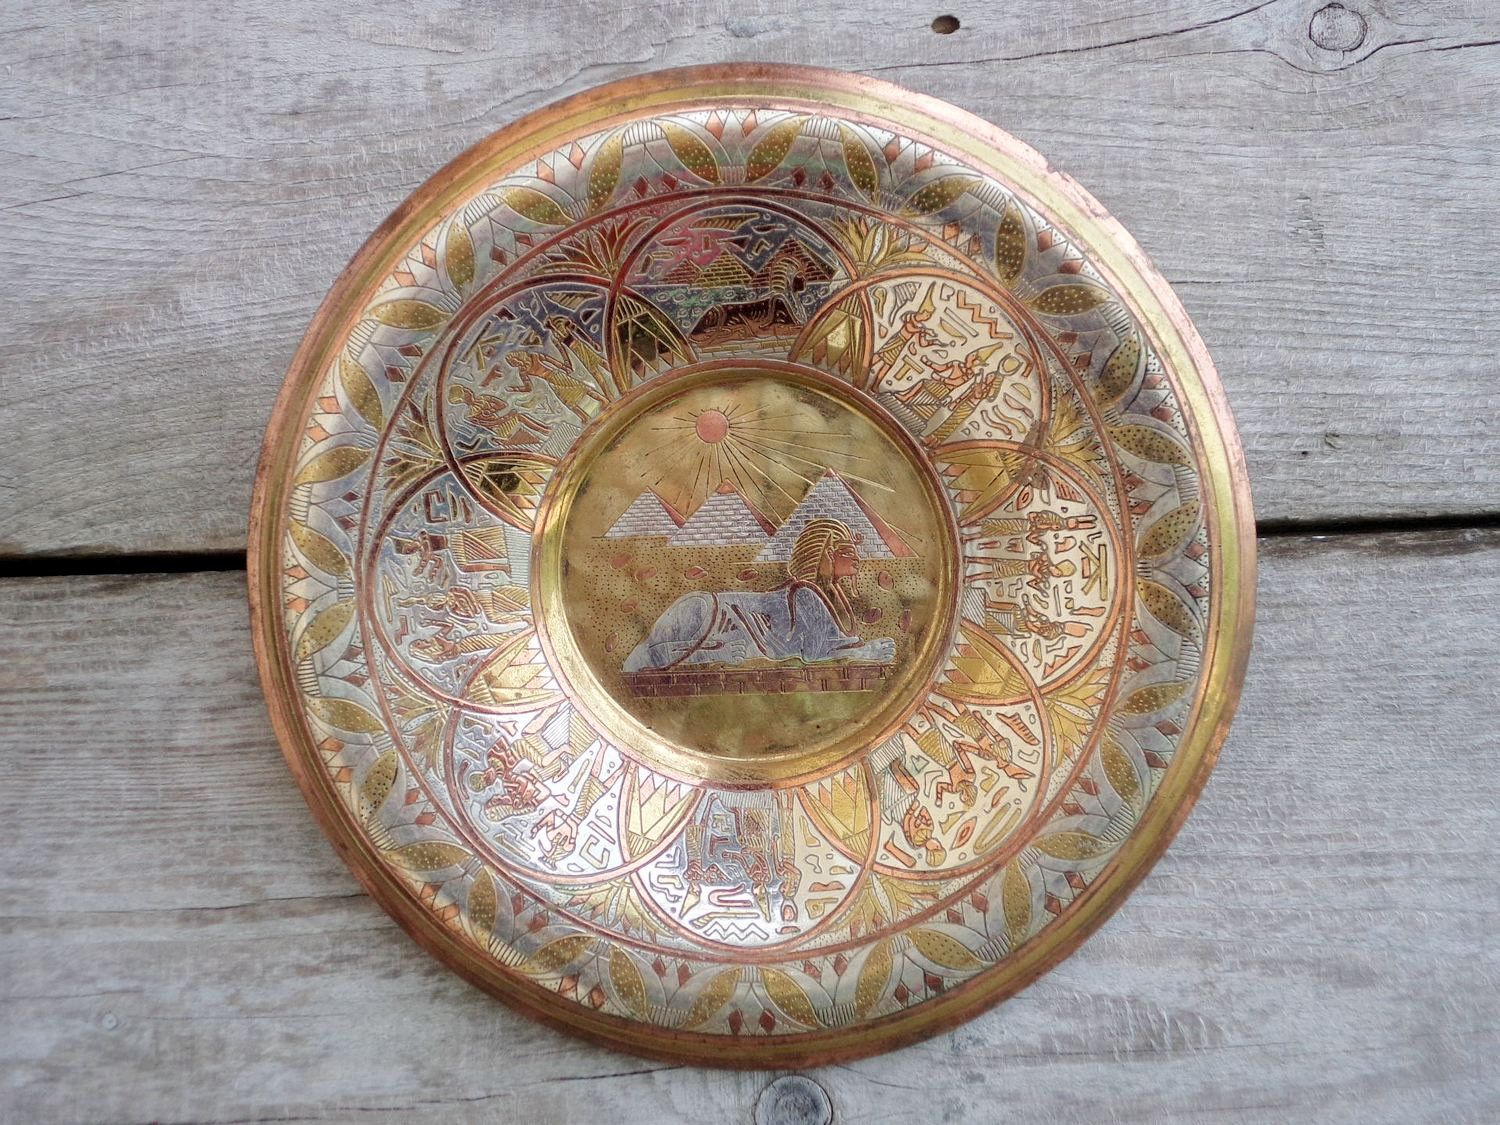 Egyptian Pyramids And Sphinx Wall Hanging Plate Vintage Hand Etsy Egyptian Pyramids Wall Hanging Pyramids